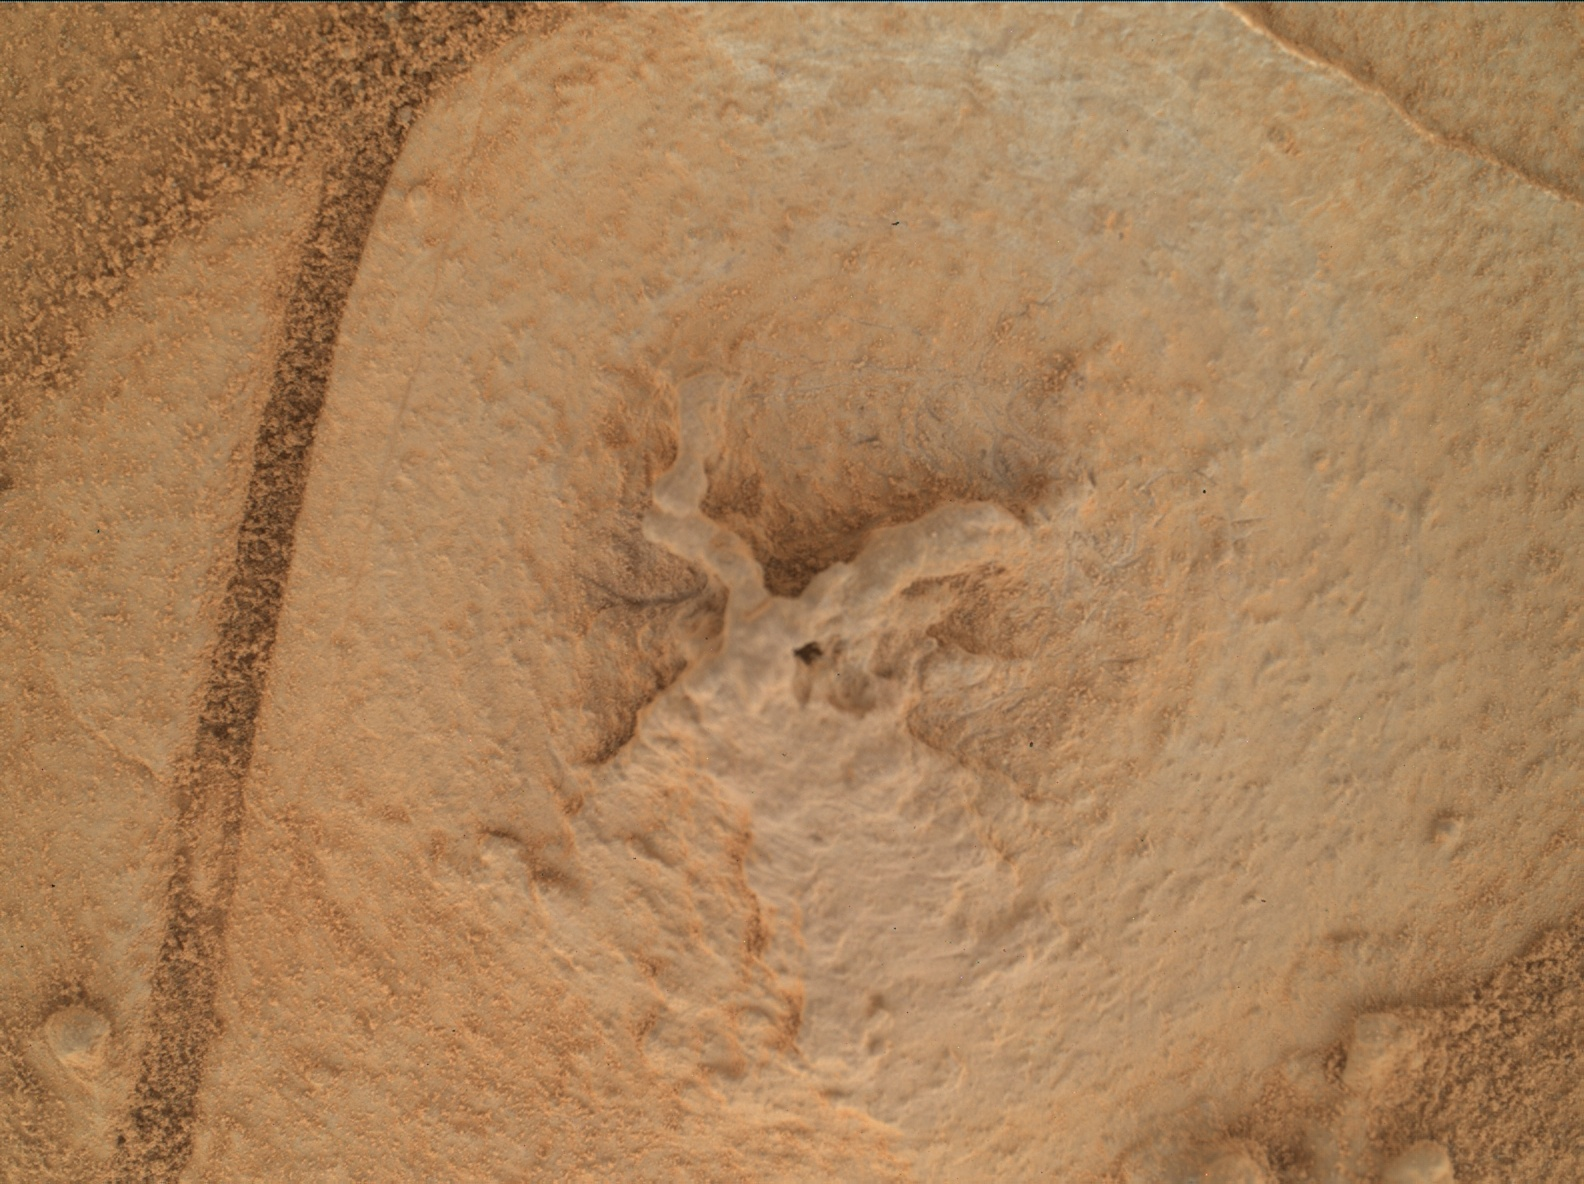 Nasa's Mars rover Curiosity acquired this image using its Mars Hand Lens Imager (MAHLI) on Sol 767